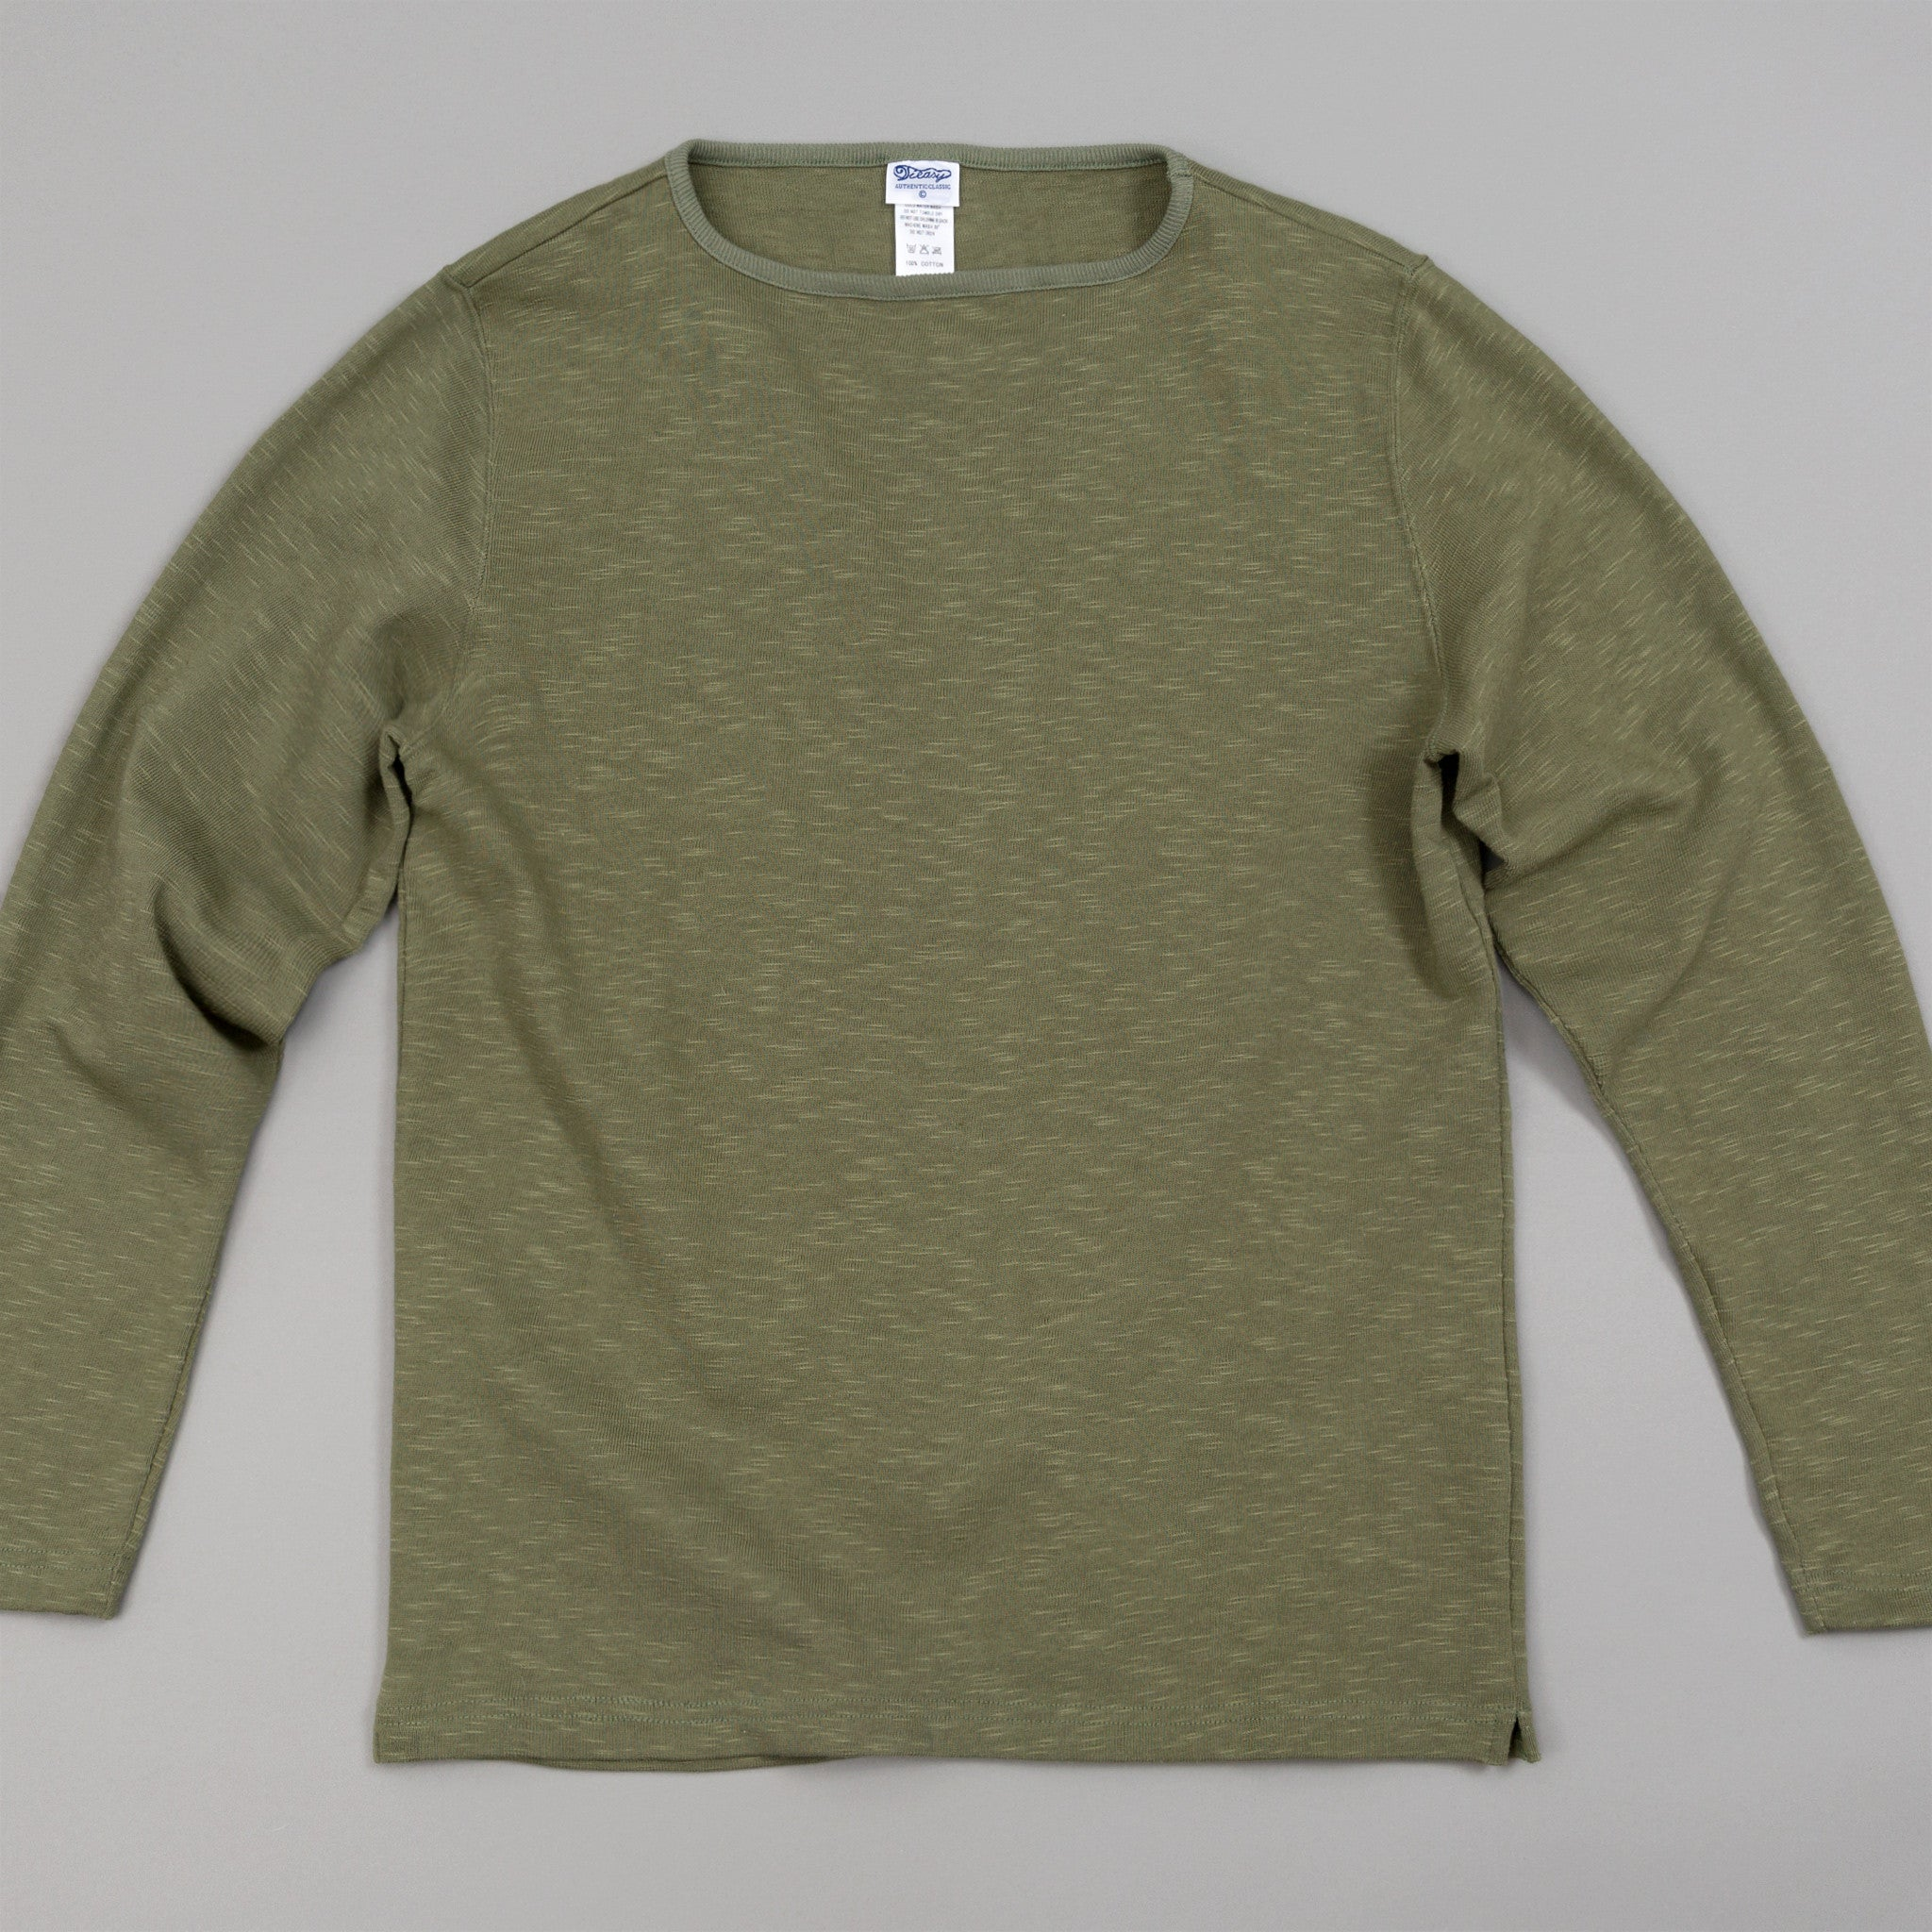 Teasy Basque Shirt, Tea Green